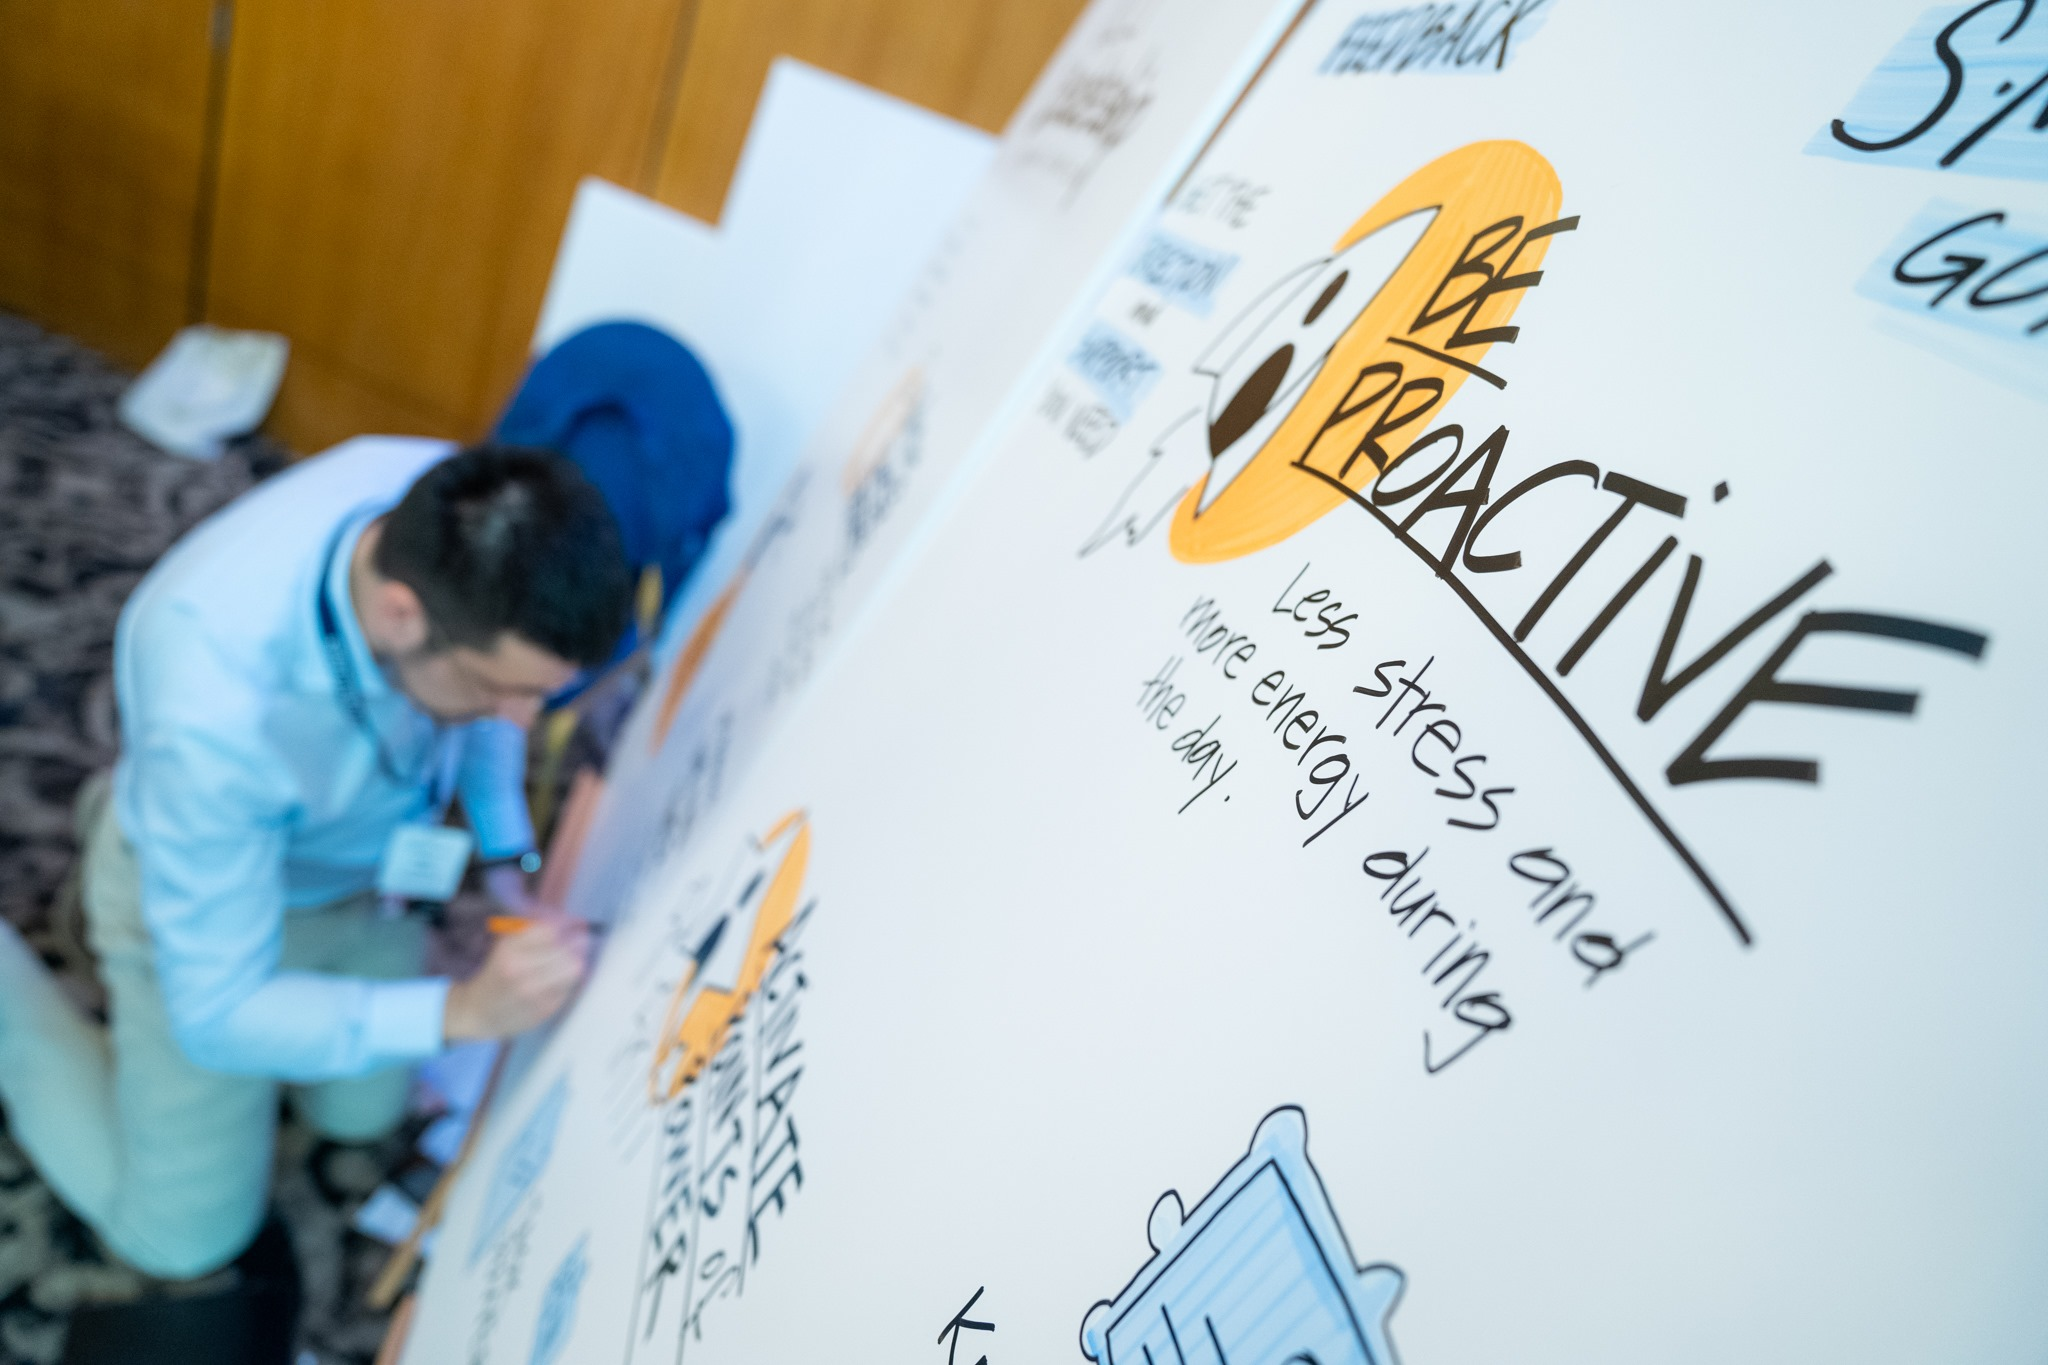 iulian human invest conference graphic recording 1